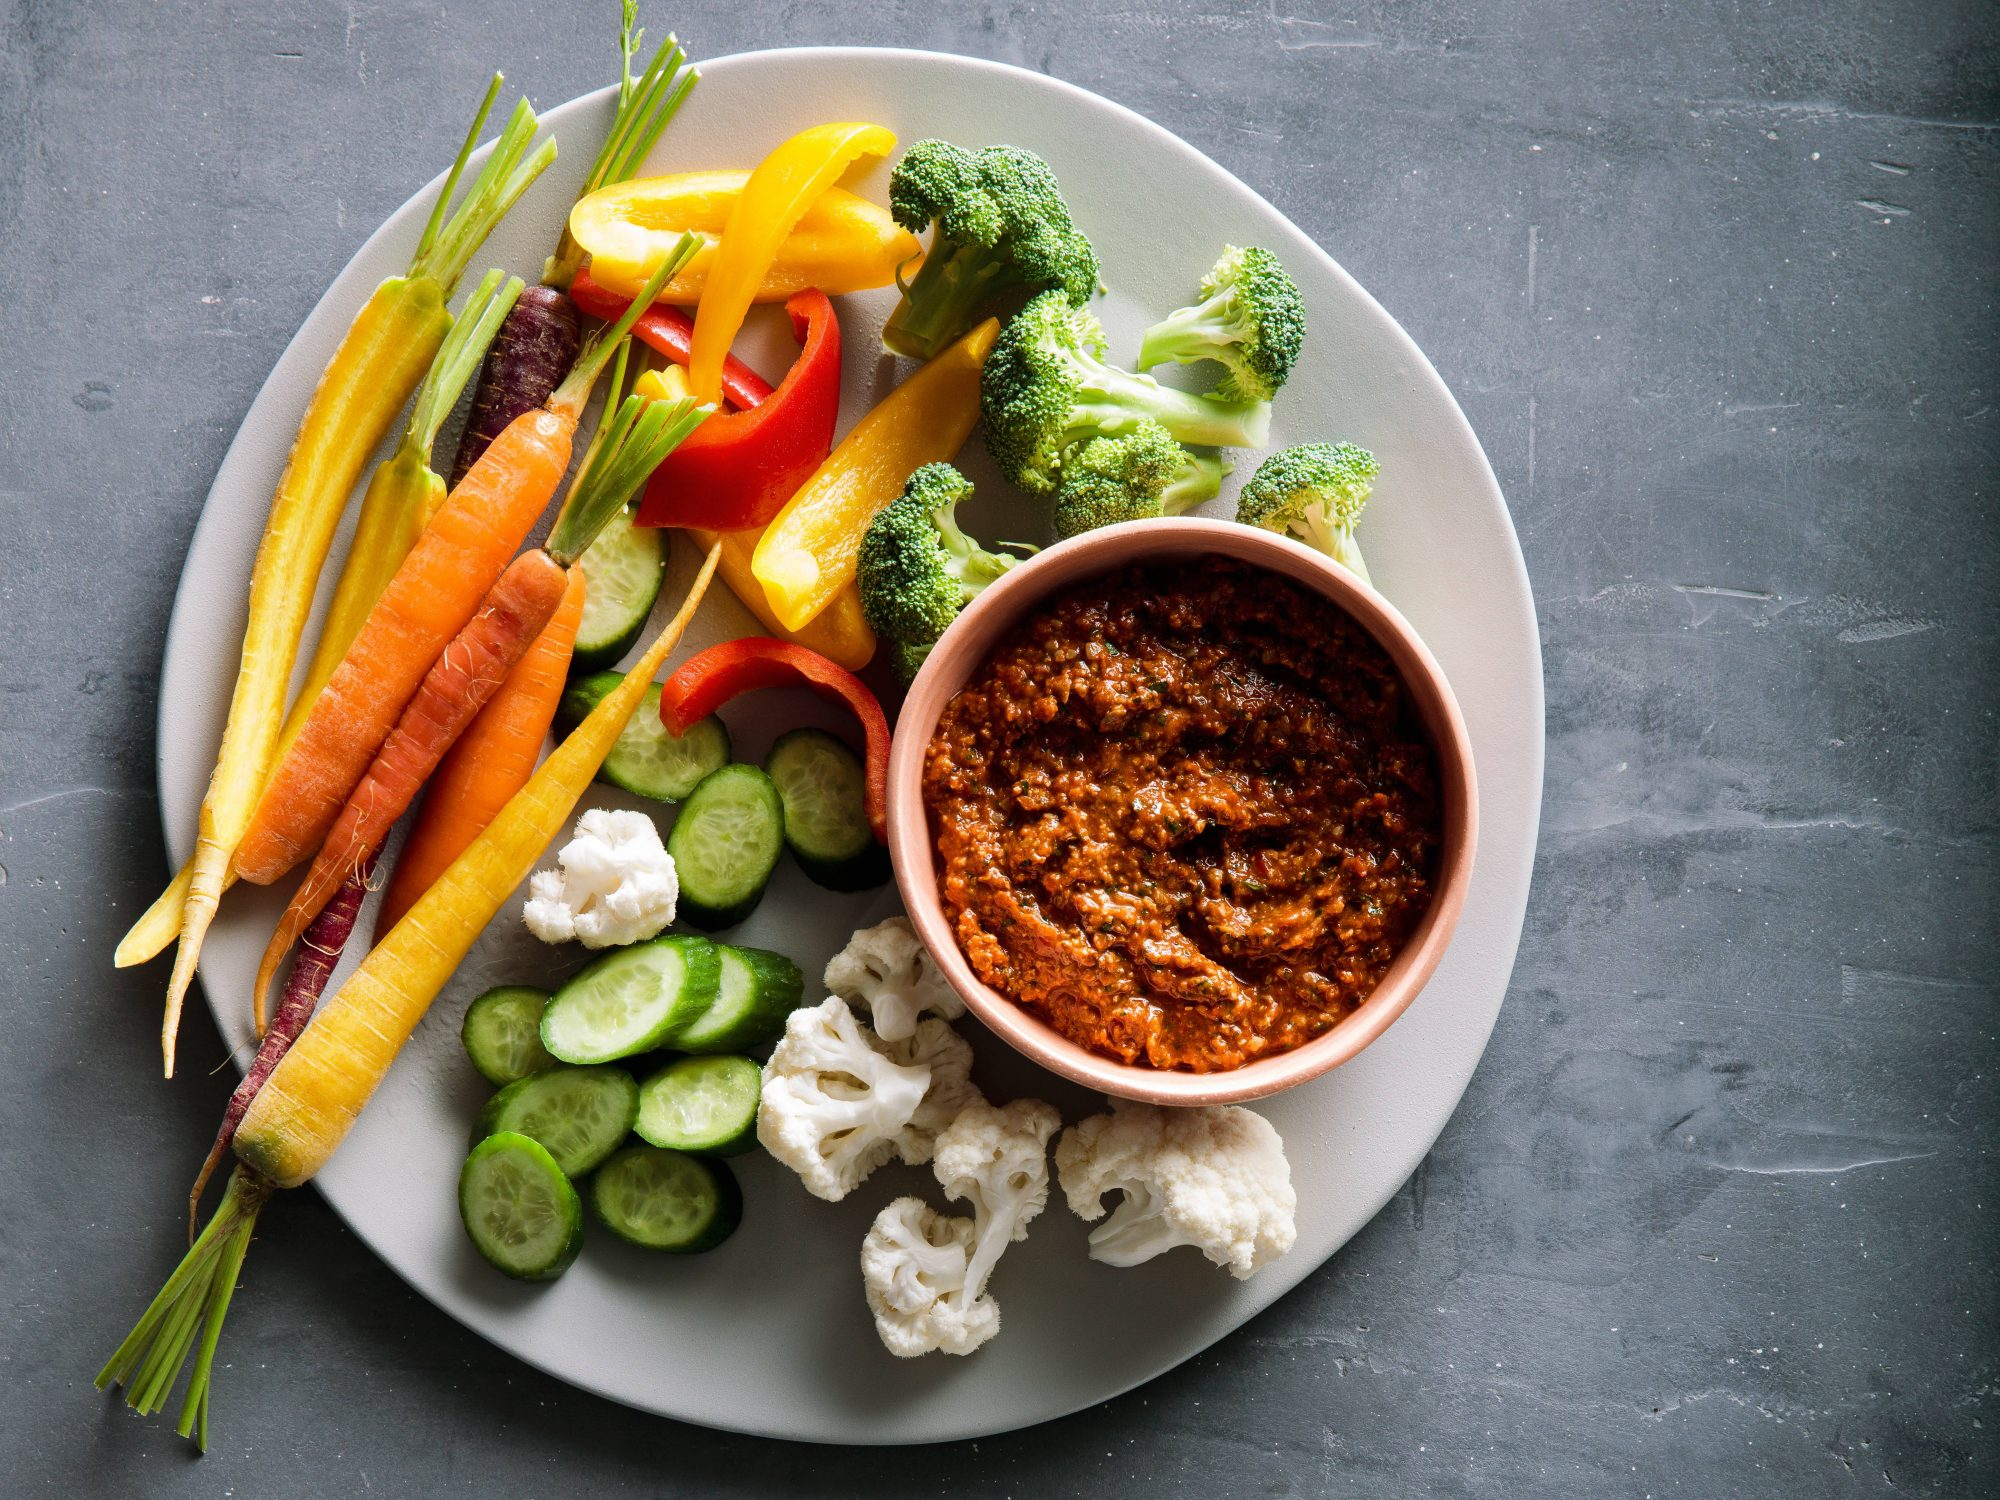 Sunflower Seed Romesco Sauce